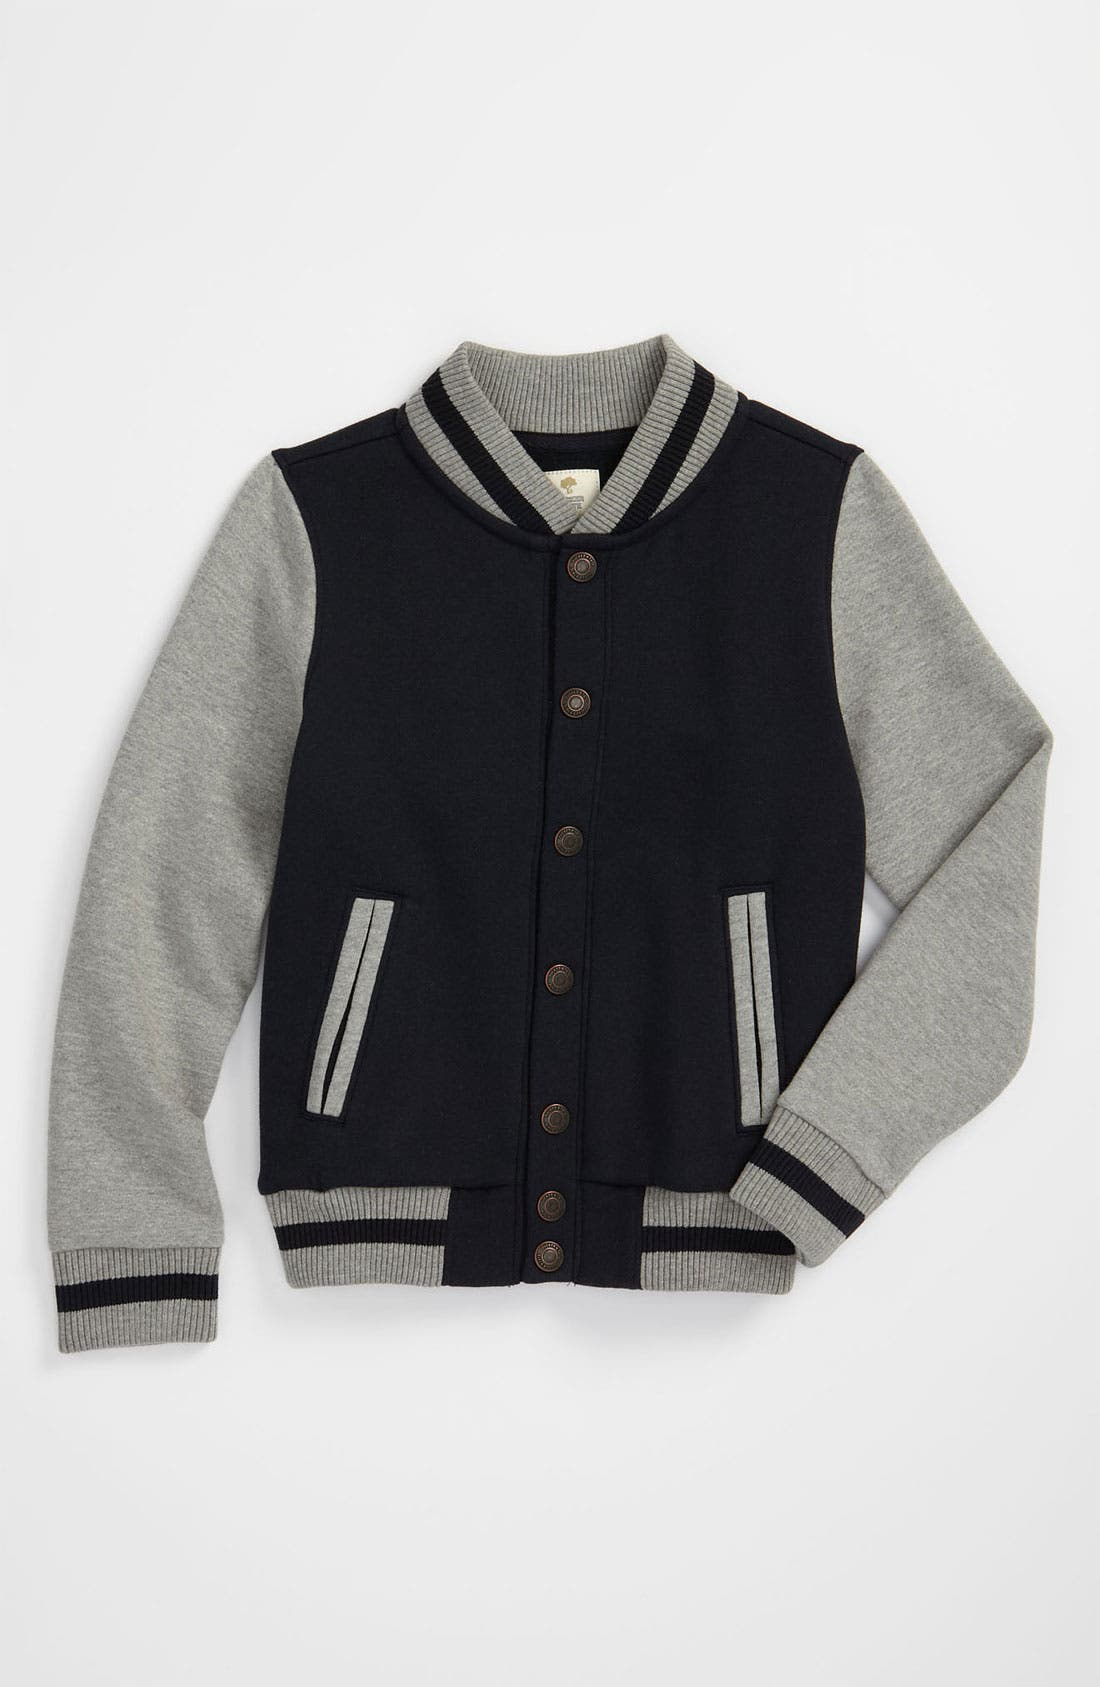 Alternate Image 1 Selected - Tucker + Tate 'Emmit' Varsity Jacket (Big Boys)